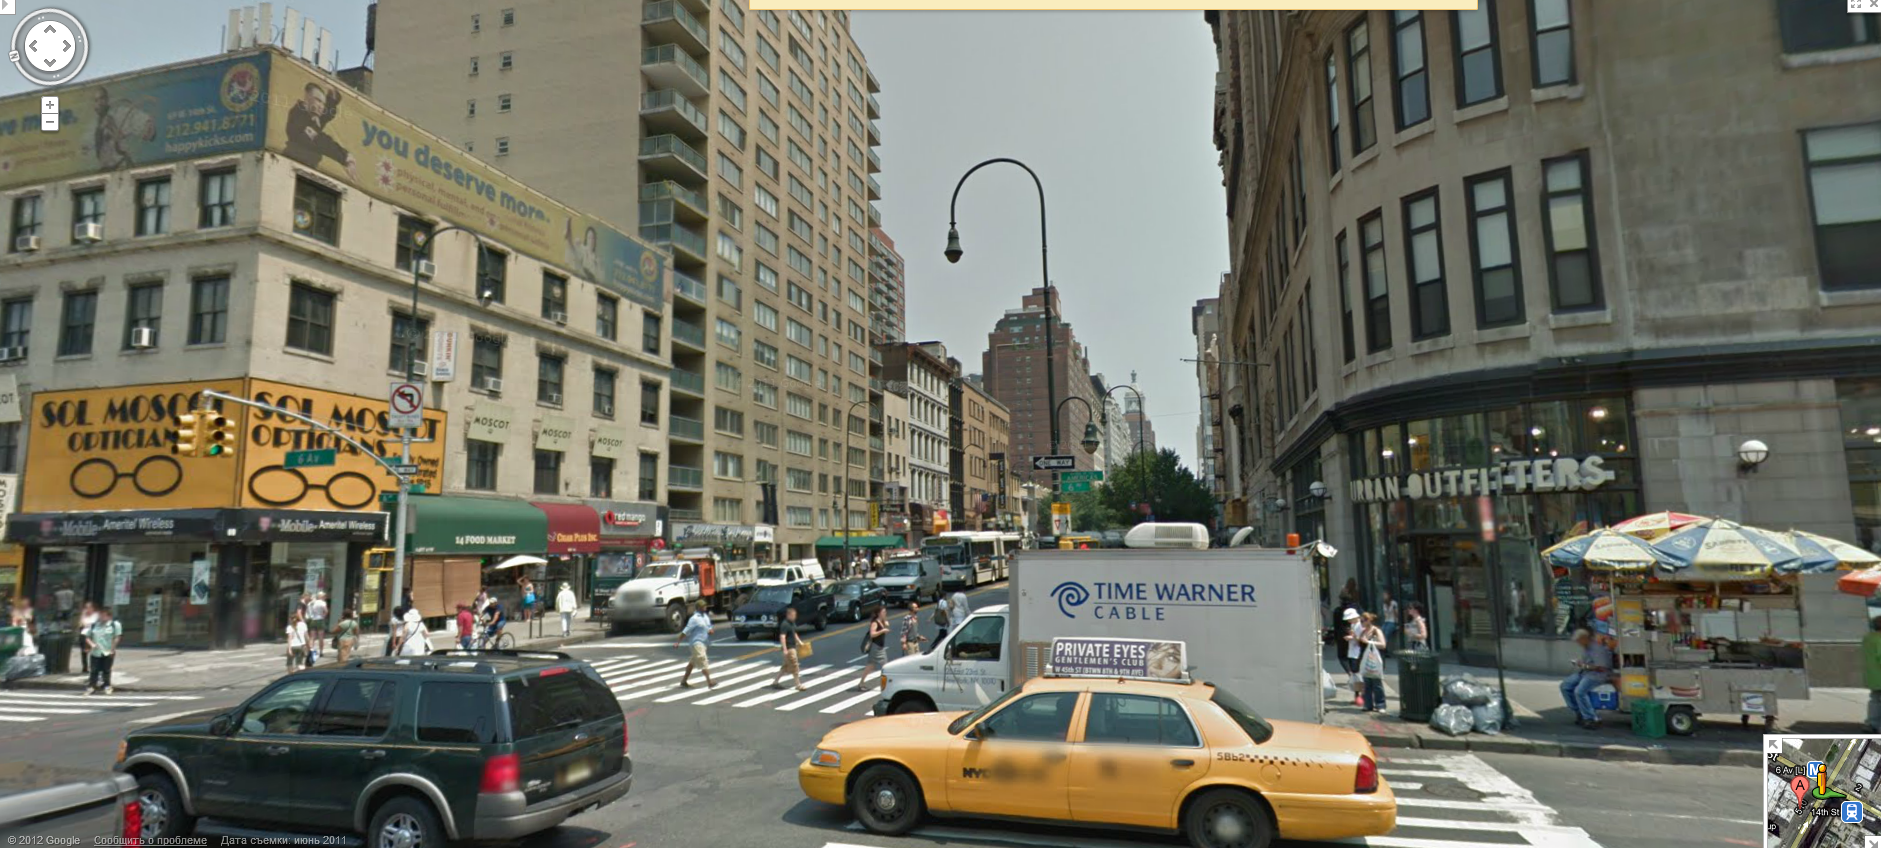 Google_StreetView2.png